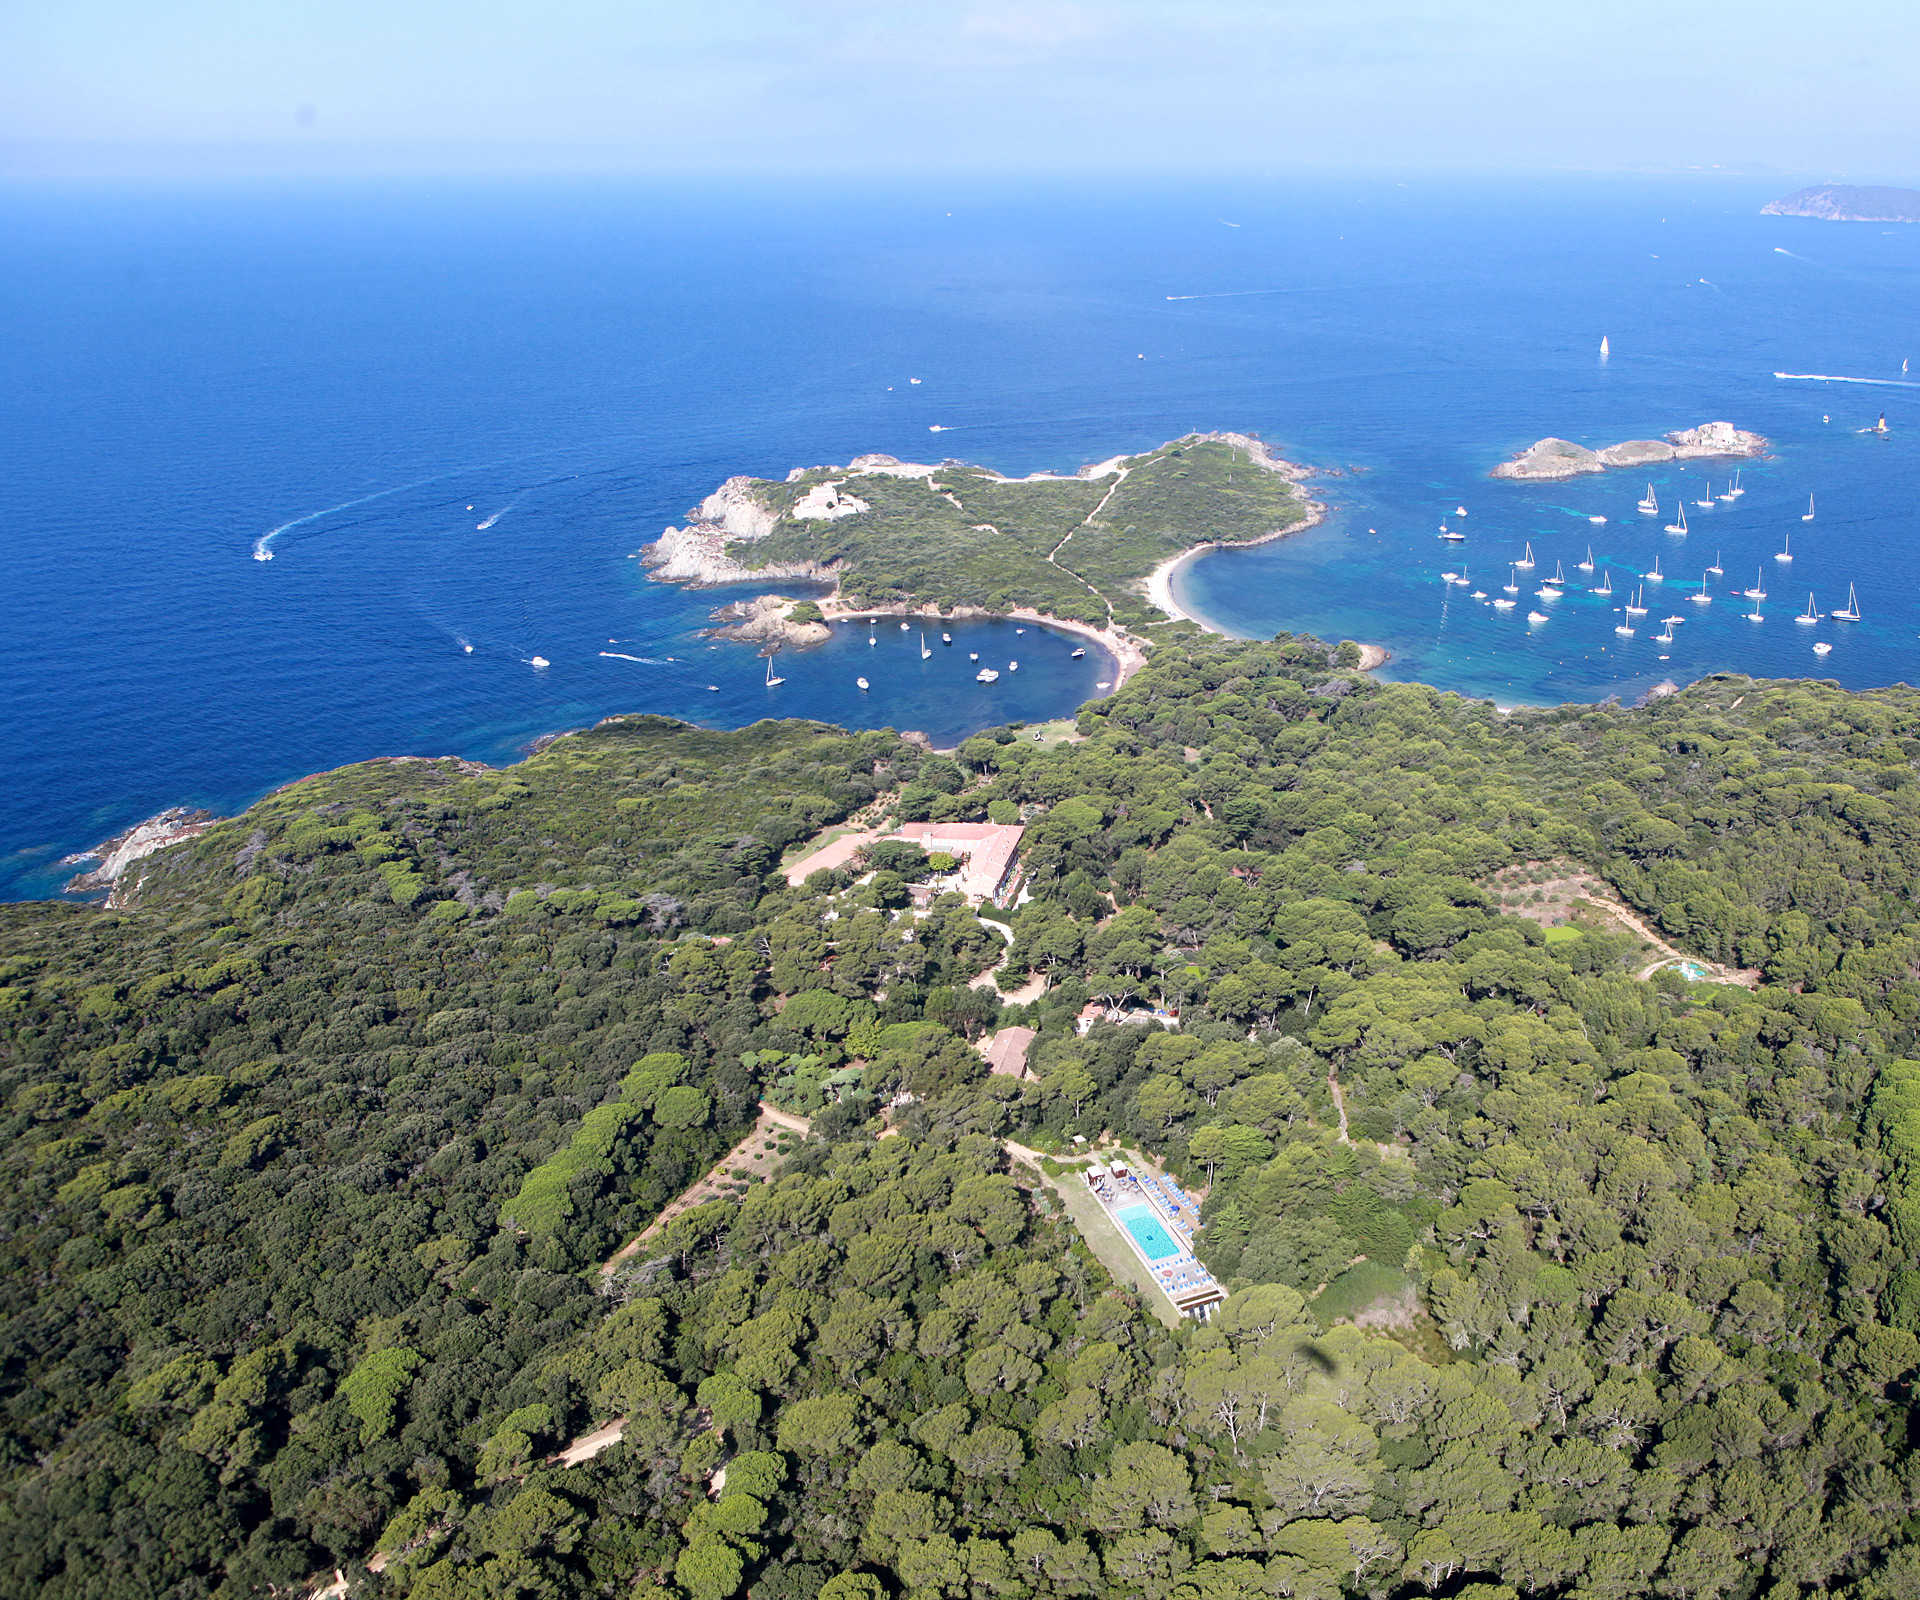 The Island of Porquerolles